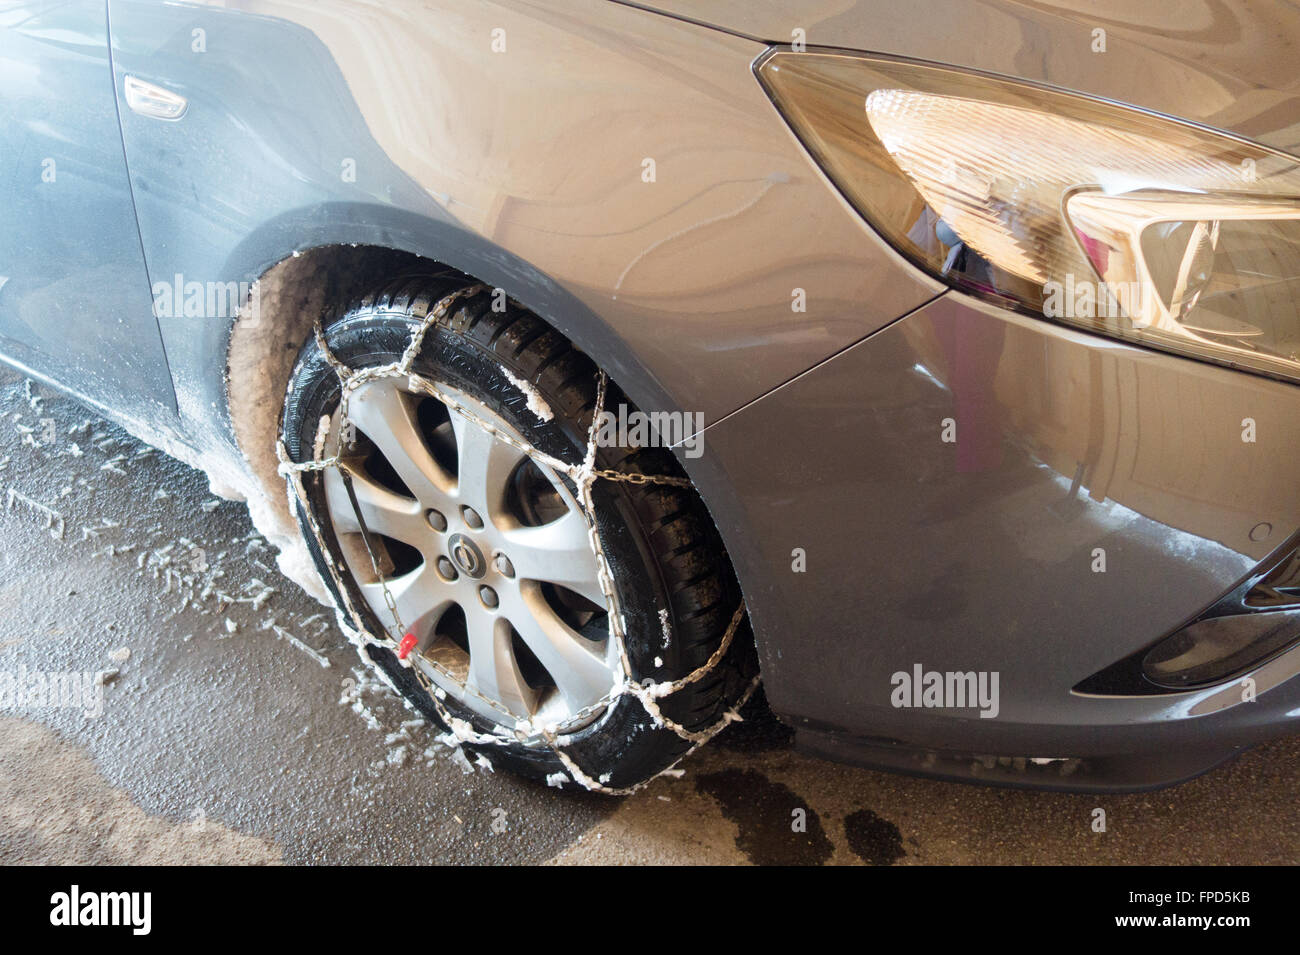 Snow chains on a car tyre in winter, Switzerland Europe - Stock Image